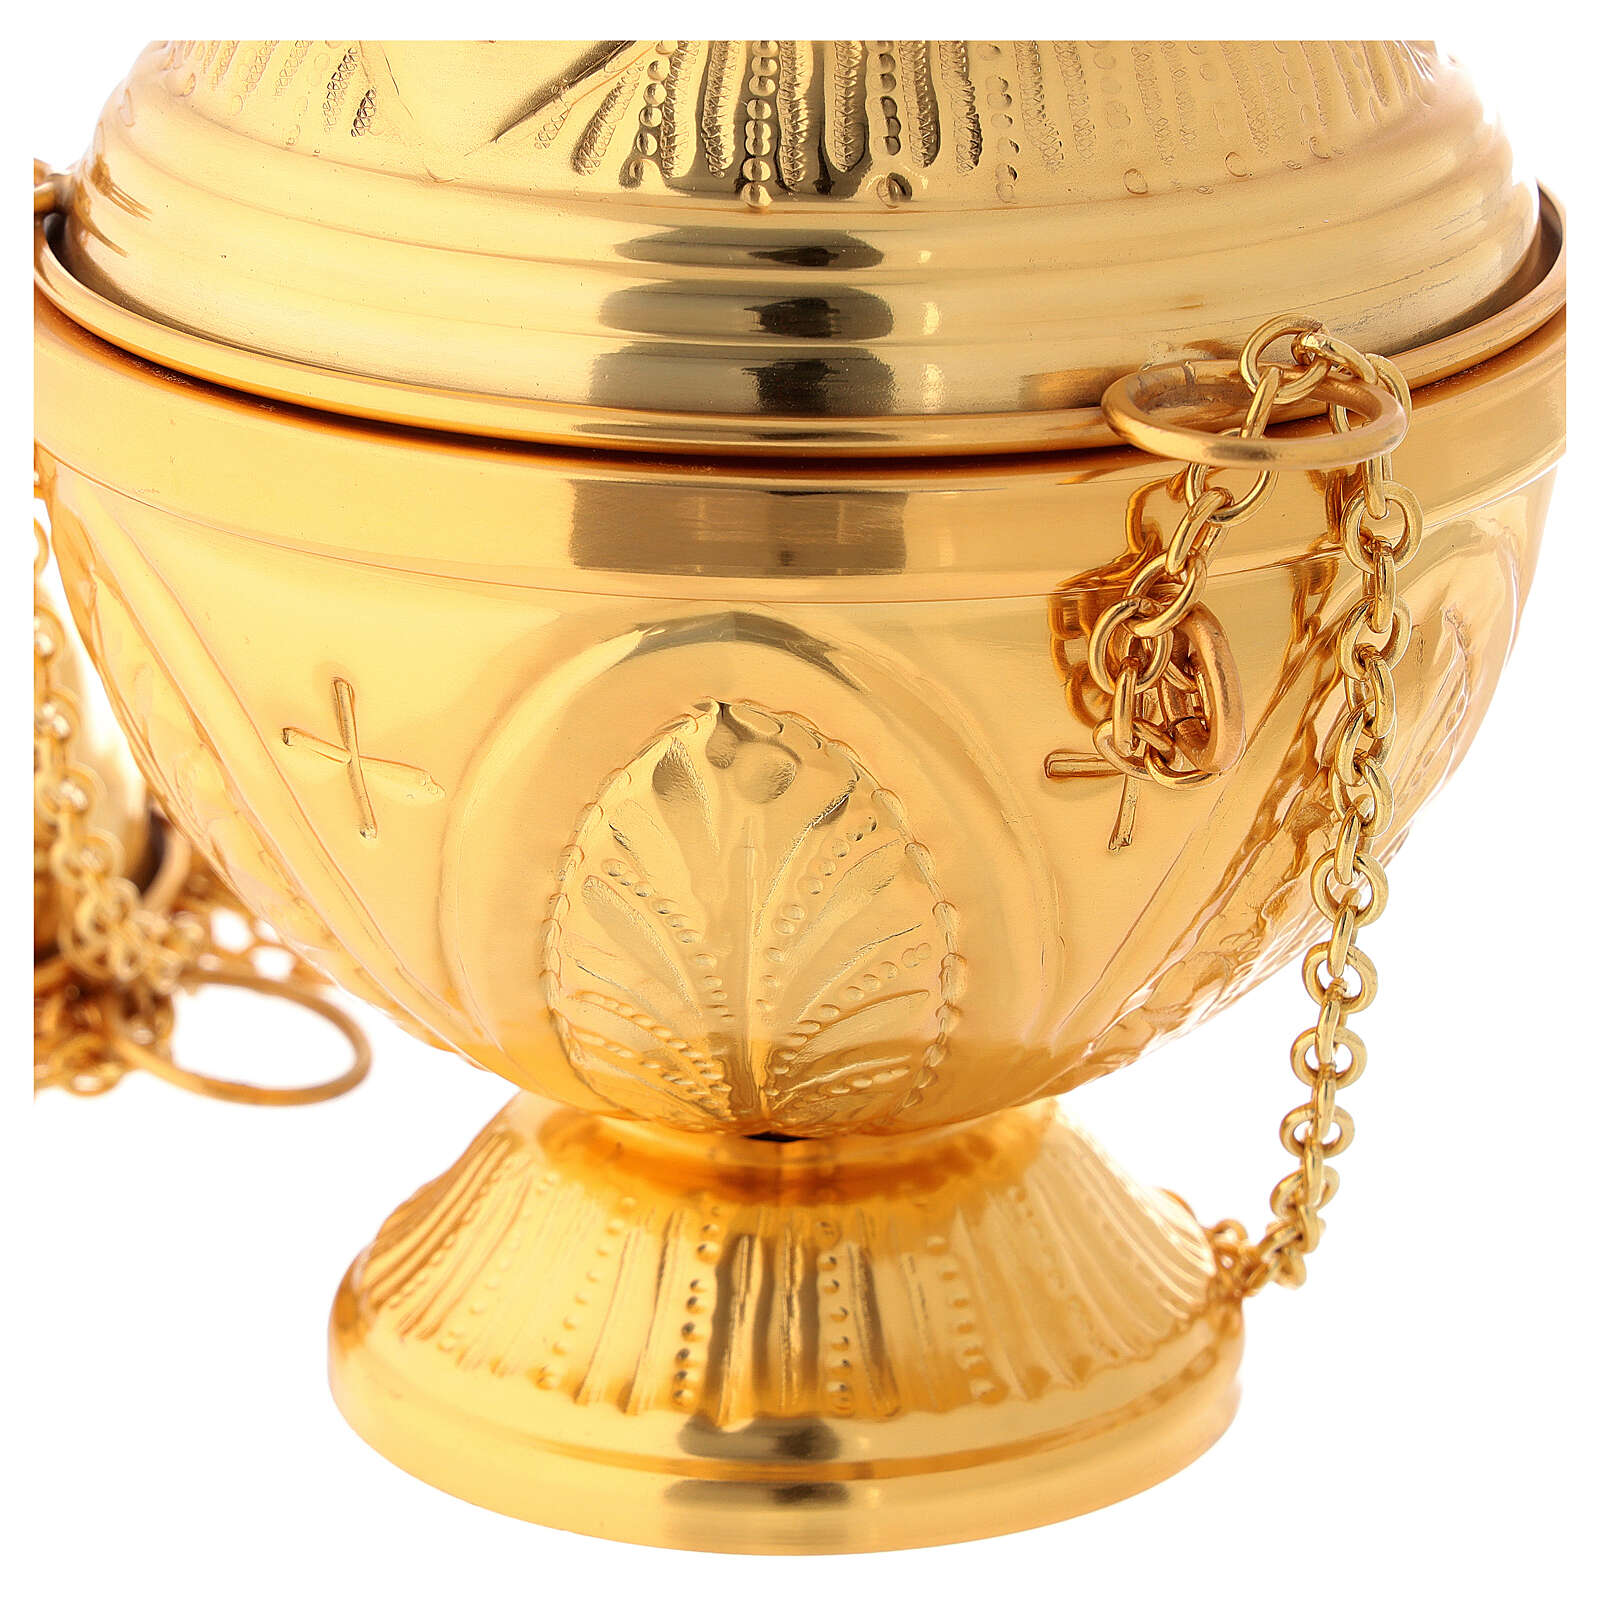 Chiseled gold plated thurible with boat crosses and leaves 3